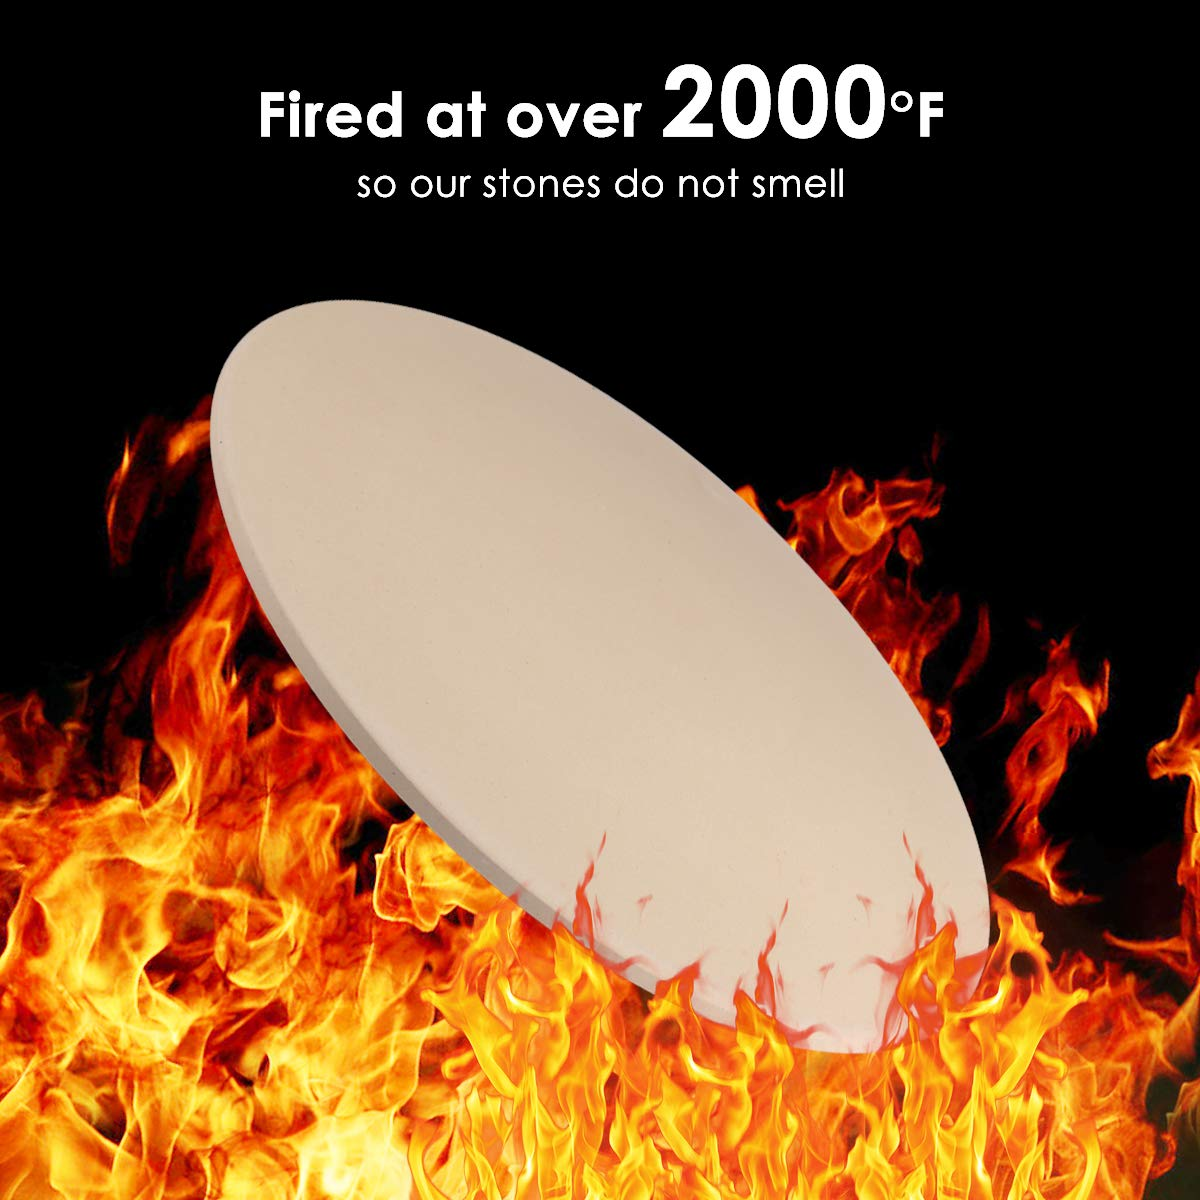 Pizza Stone, Cakie Heavy Duty Ceramic Pizza Grilling Stone, 16 Inch Round Baking Stone, Pizza Pan, Perfect for Oven, BBQ and Grill, Thermal Shock Resistant, Durable and Safe by Cakie (Image #4)